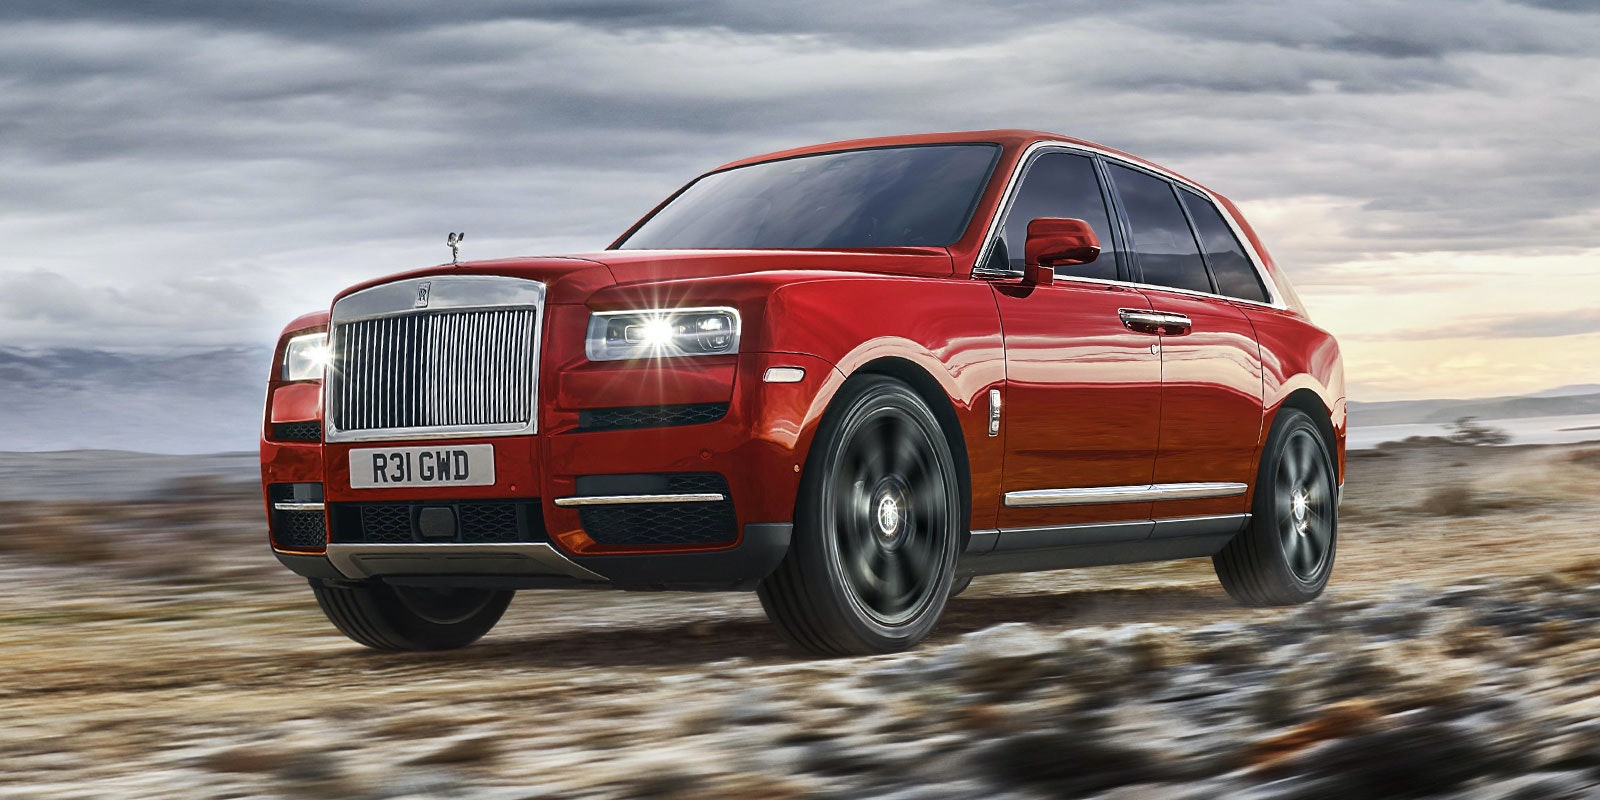 Rolls royce cullinan red front driving lead 1.jpg?ixlib=rb 1.1